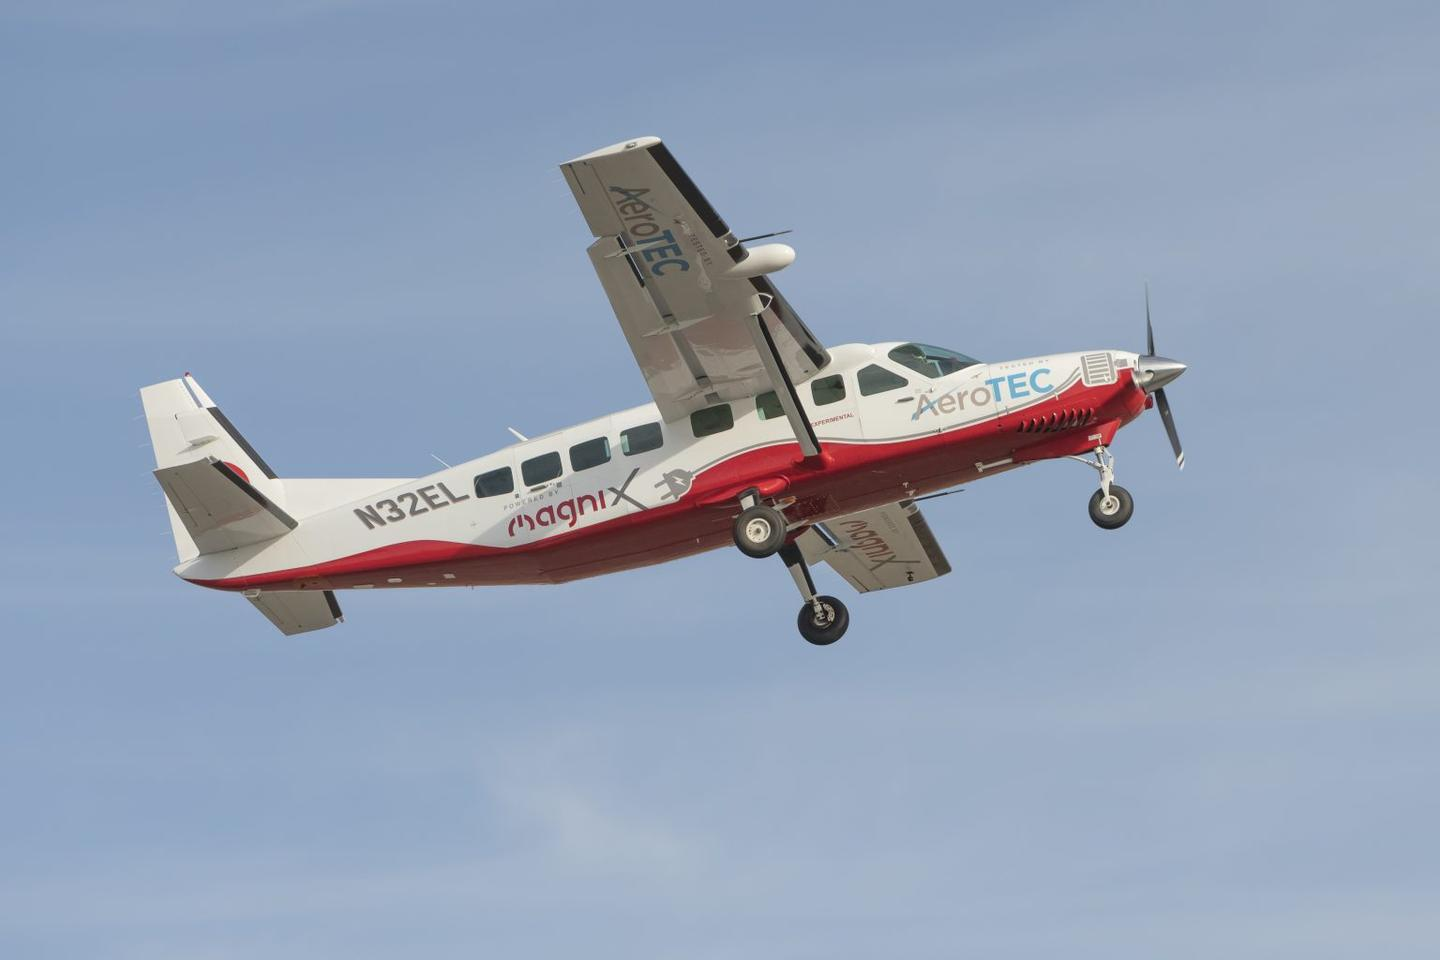 The maiden voyage of the electric Cessna took place at AeroTEC's test facility in Moses Lake, Washington